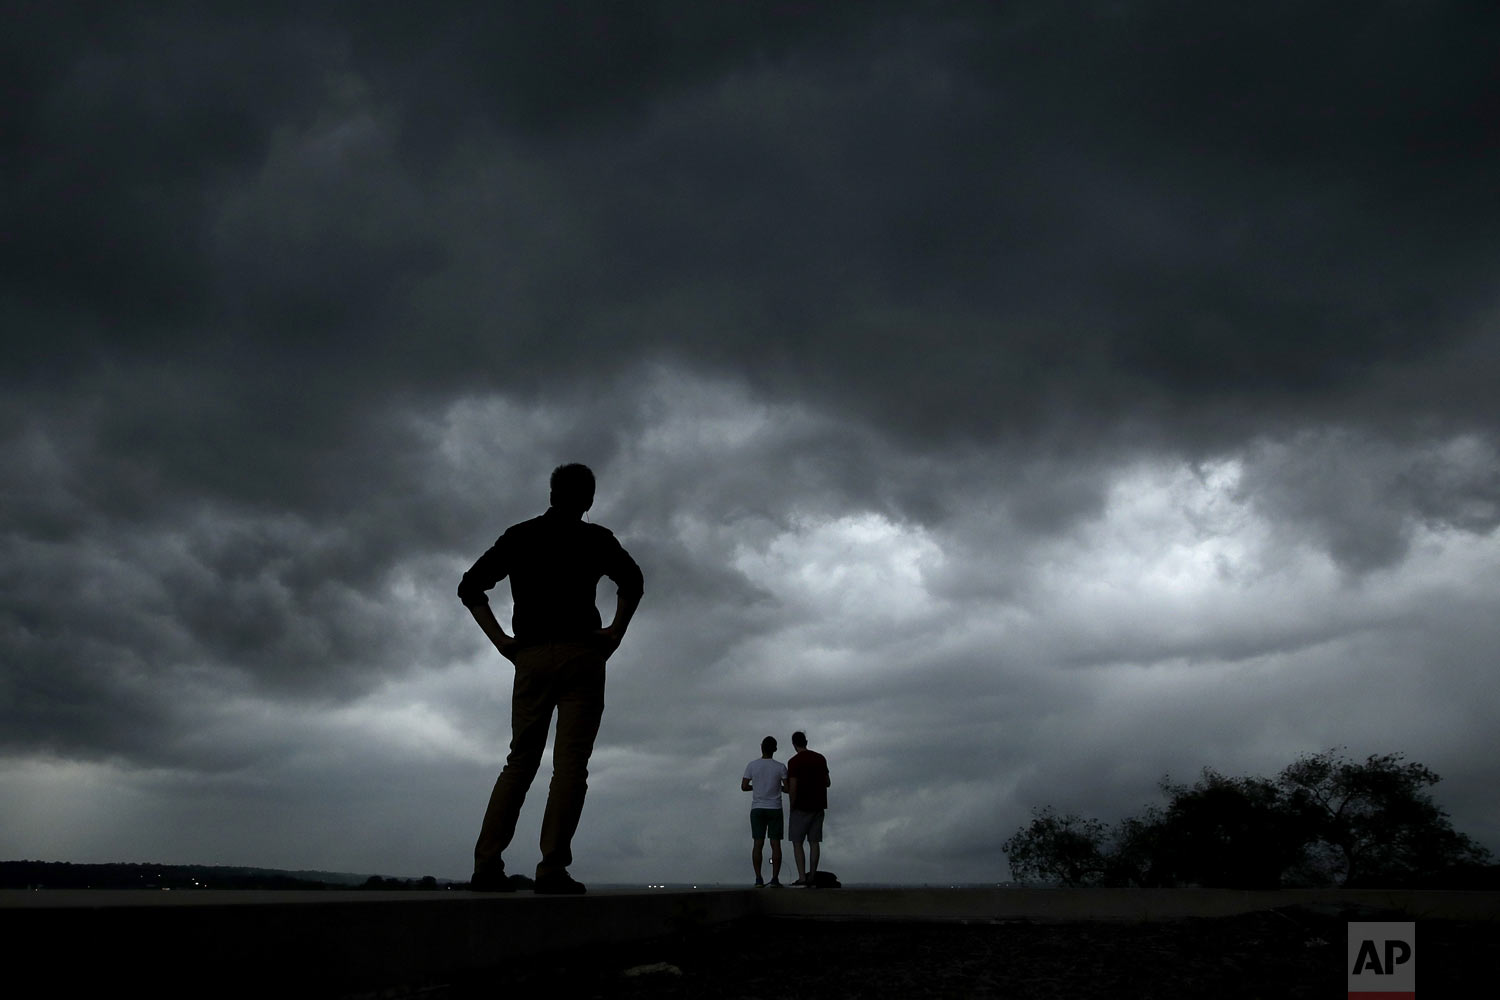 People watch from the Liberty Memorial as a severe storm that dropped several tornados earlier approaches downtown Kansas City, Mo., on Tuesday, May 28, 2019. (AP Photo/Charlie Riedel)